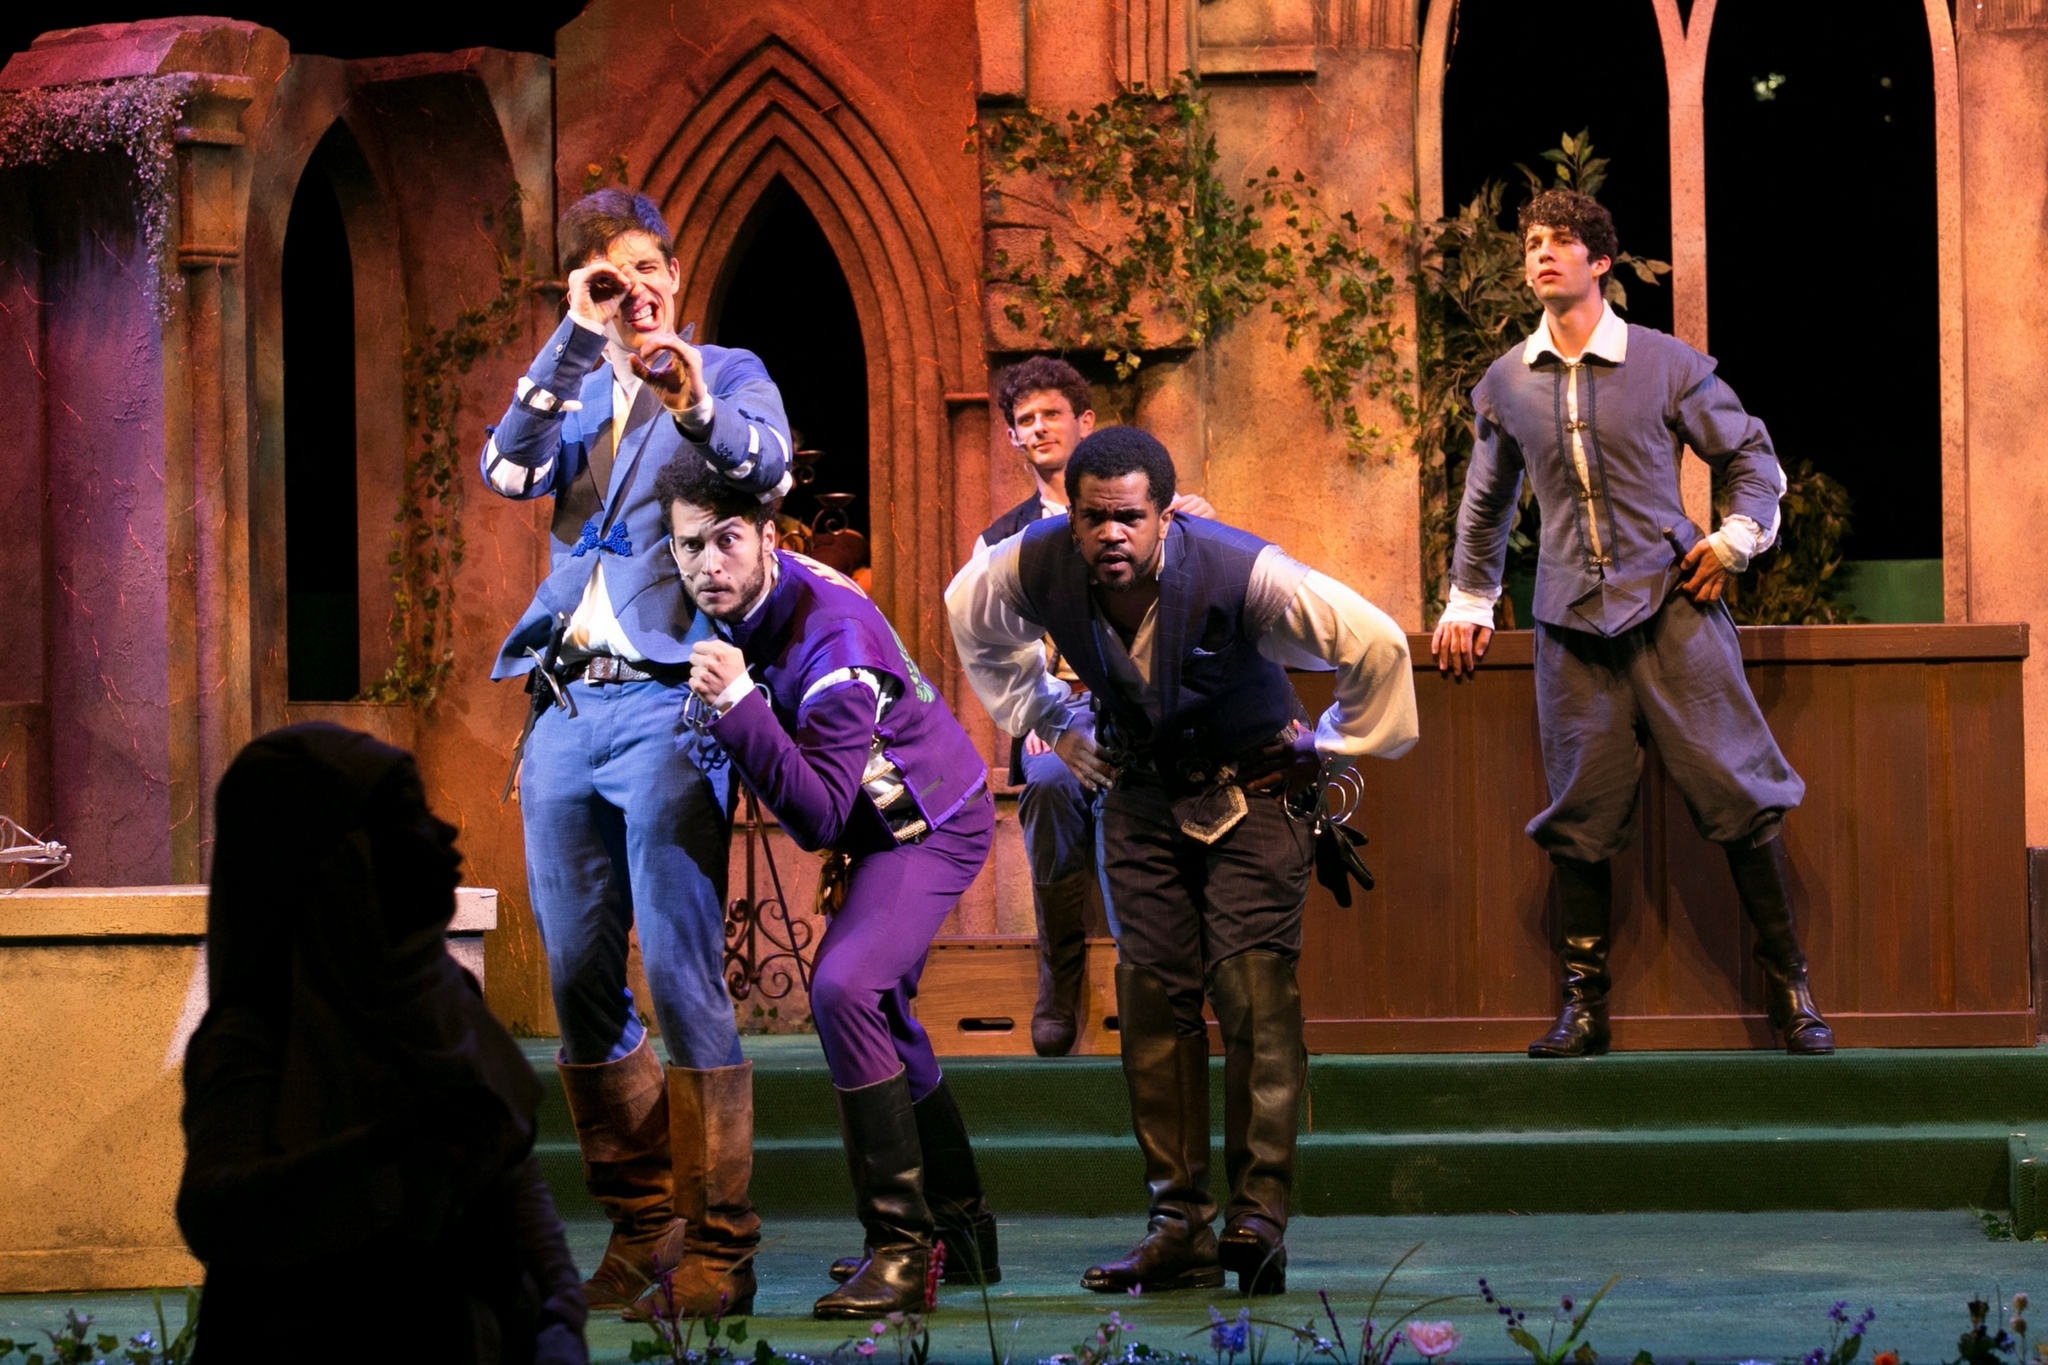 John Zdrojeski (Romeo) Kario Marcel (Mercutio), Brandon G. Green (Benvolio), Andrew Prensky (Abram), and Joey Tyler (Balthasar) in Romeo & Juliet, Shakespeare on the Common 2017-Photo by Evgenia Eliseeva